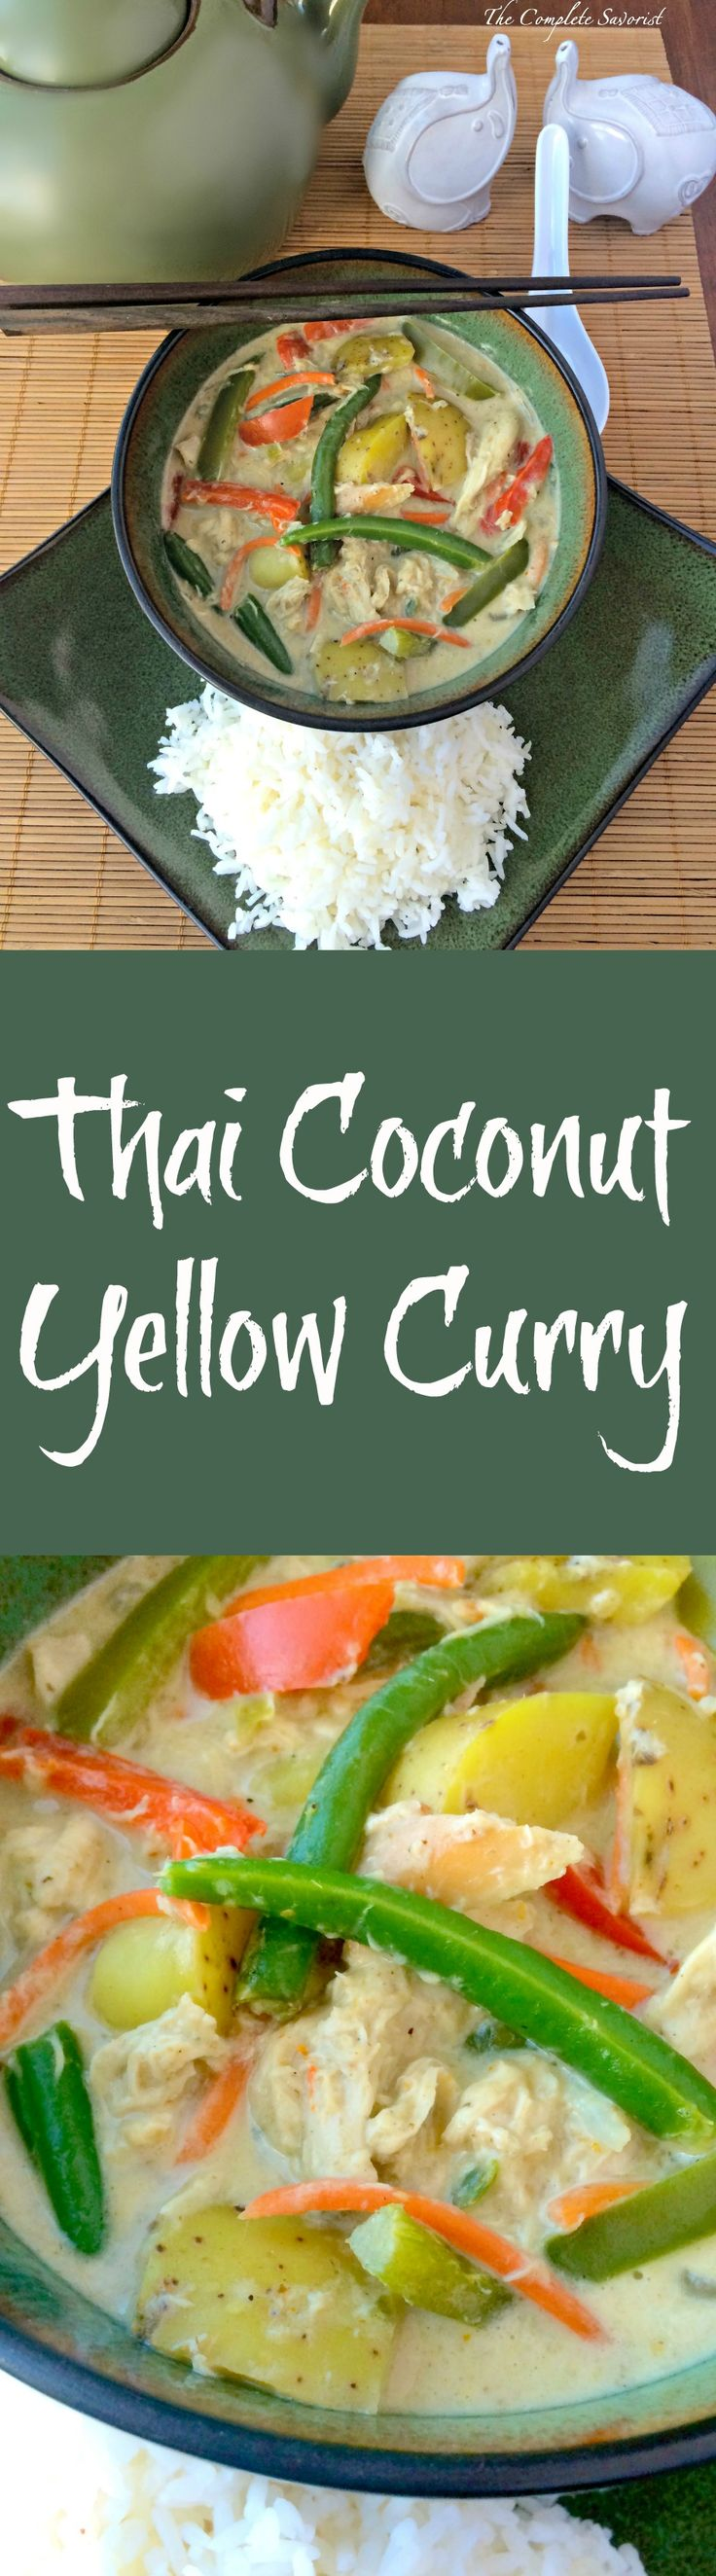 Thai Coconut Yellow Curry ~ Chicken, sweet coconut milk, yellow curry paste and veggies. ~ The Complete Savorist